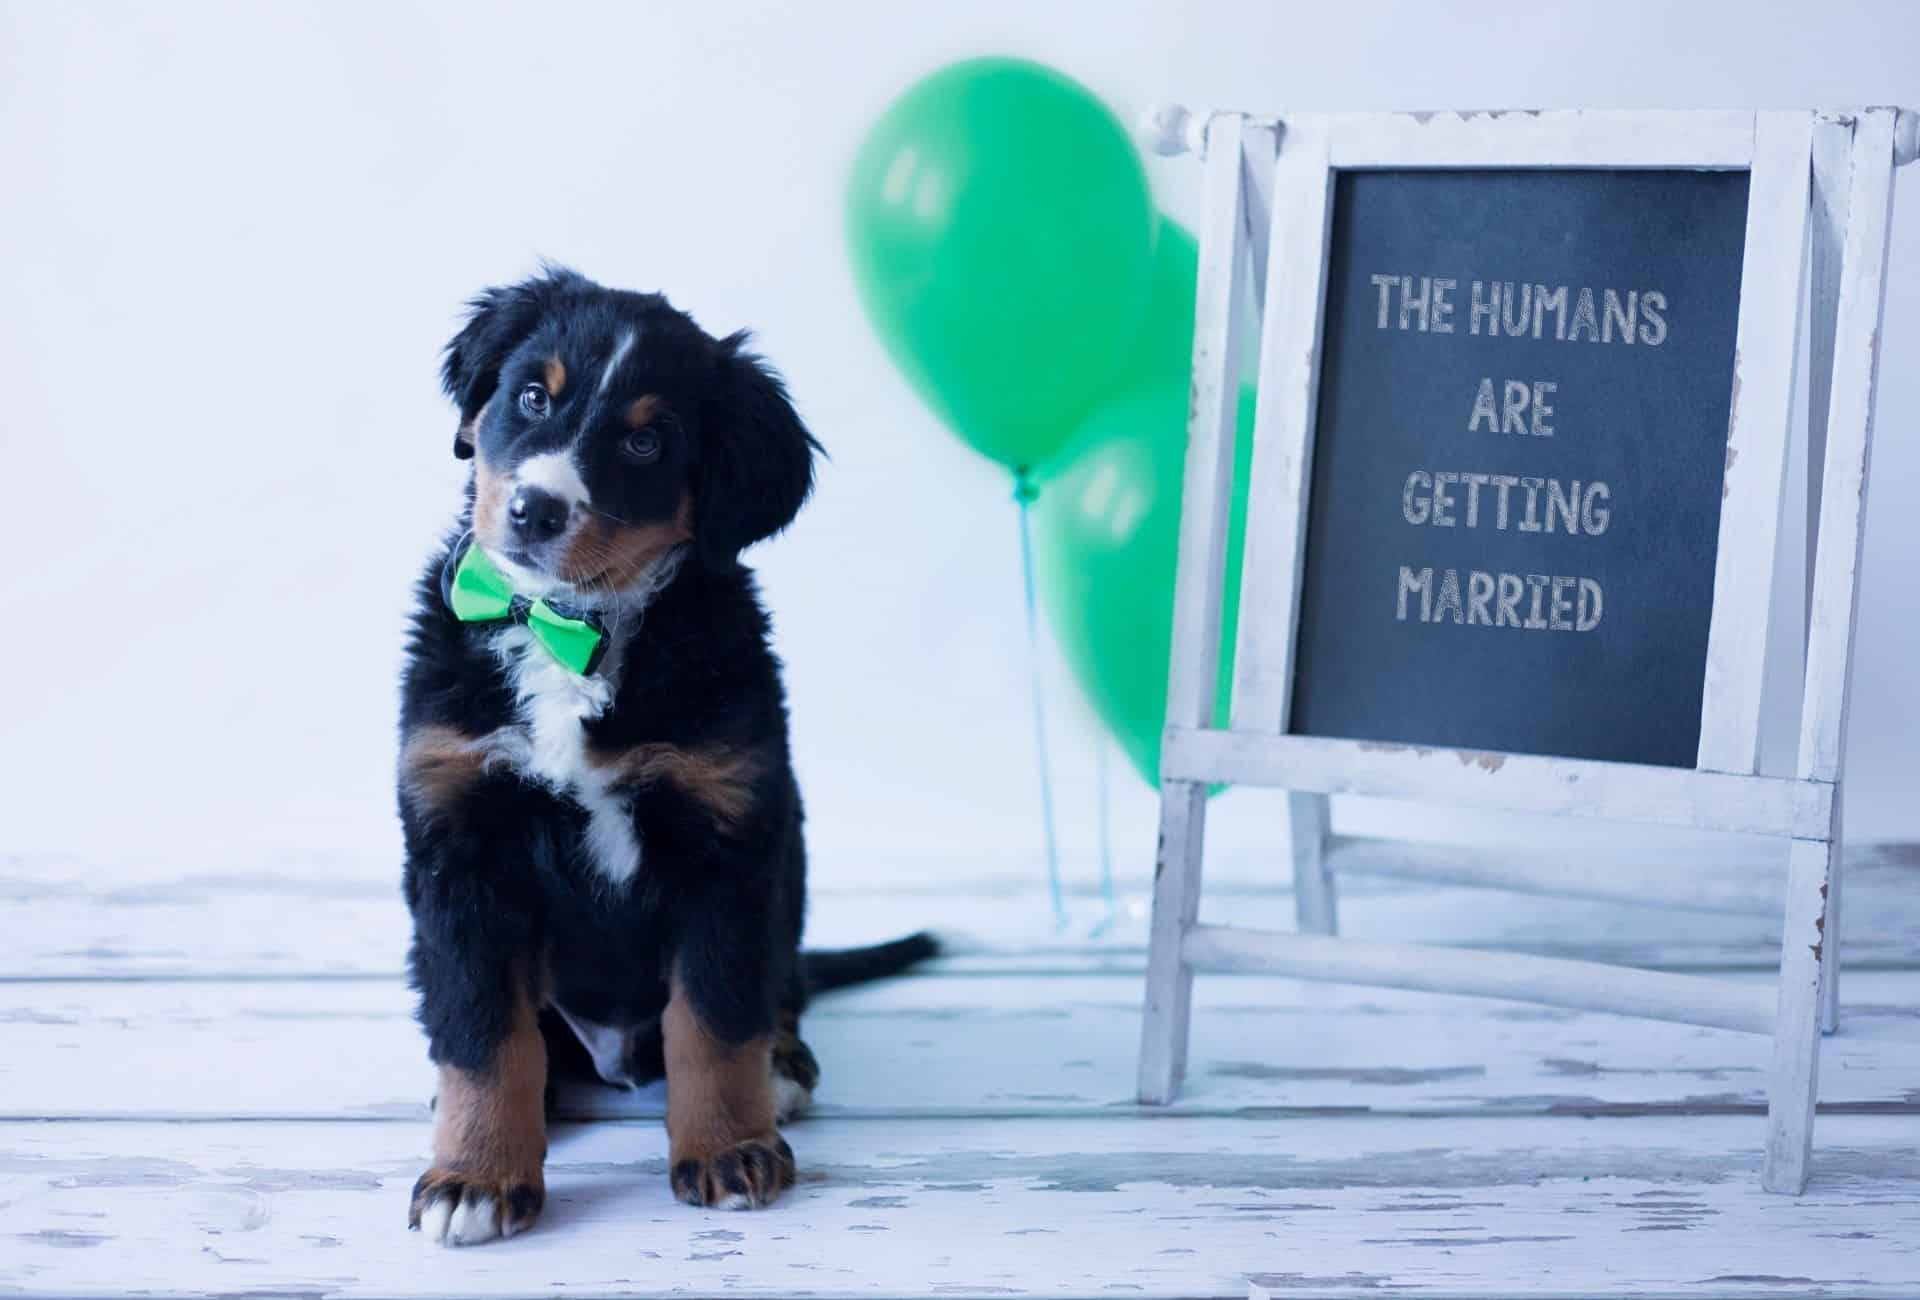 Bernese Mountain Dog with tie is celebrating the upcoming baby, implying this breed is great for kids.